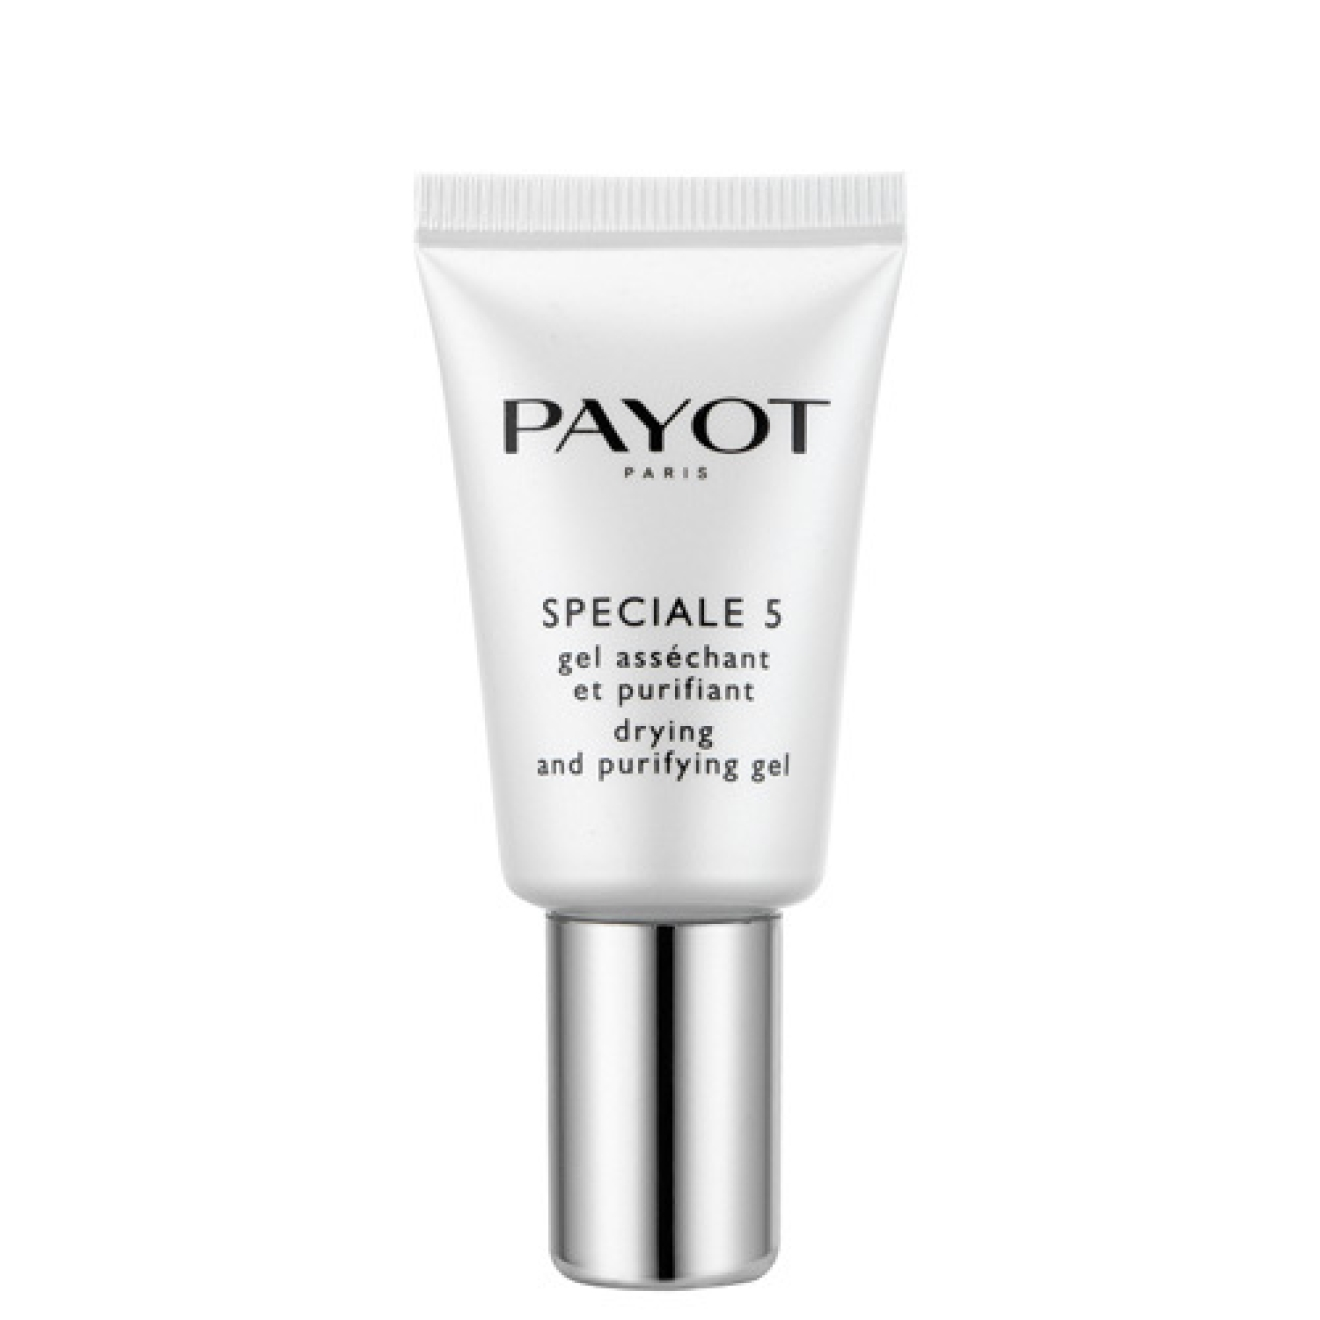 Payot Speciale 5